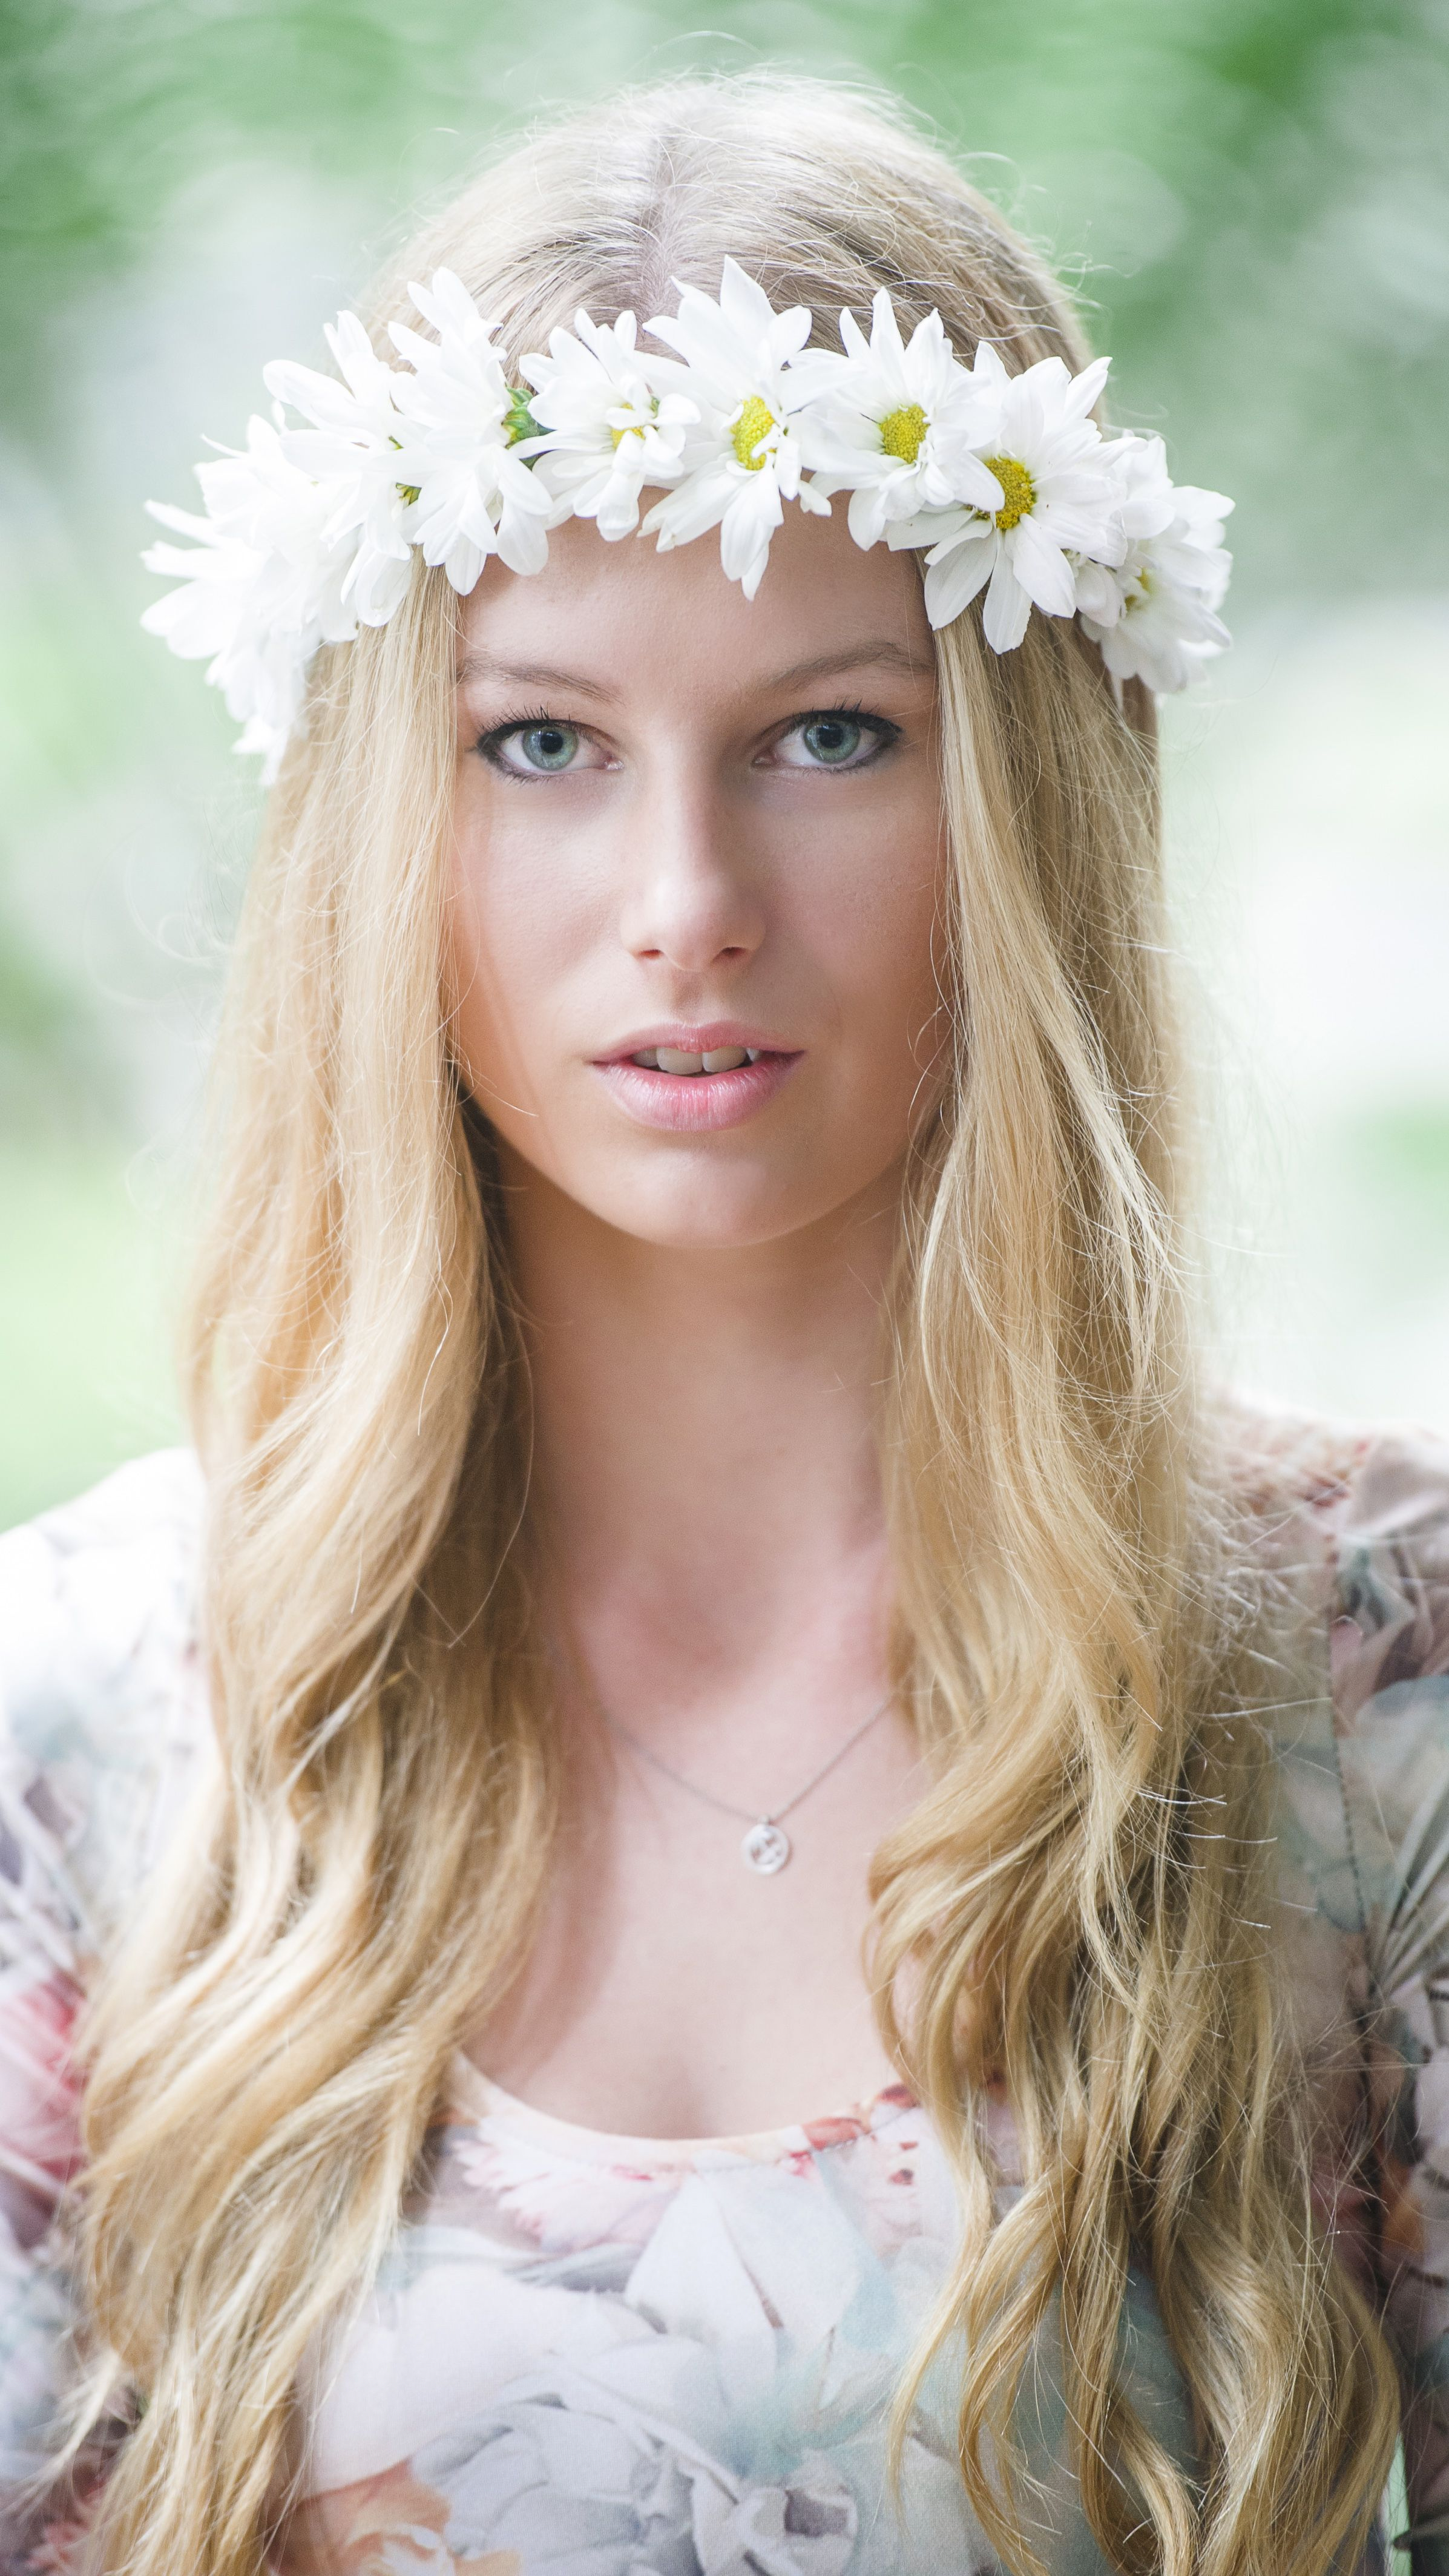 Daisy Flower Halo Floral Halos Floral Crowns Pinterest Floral